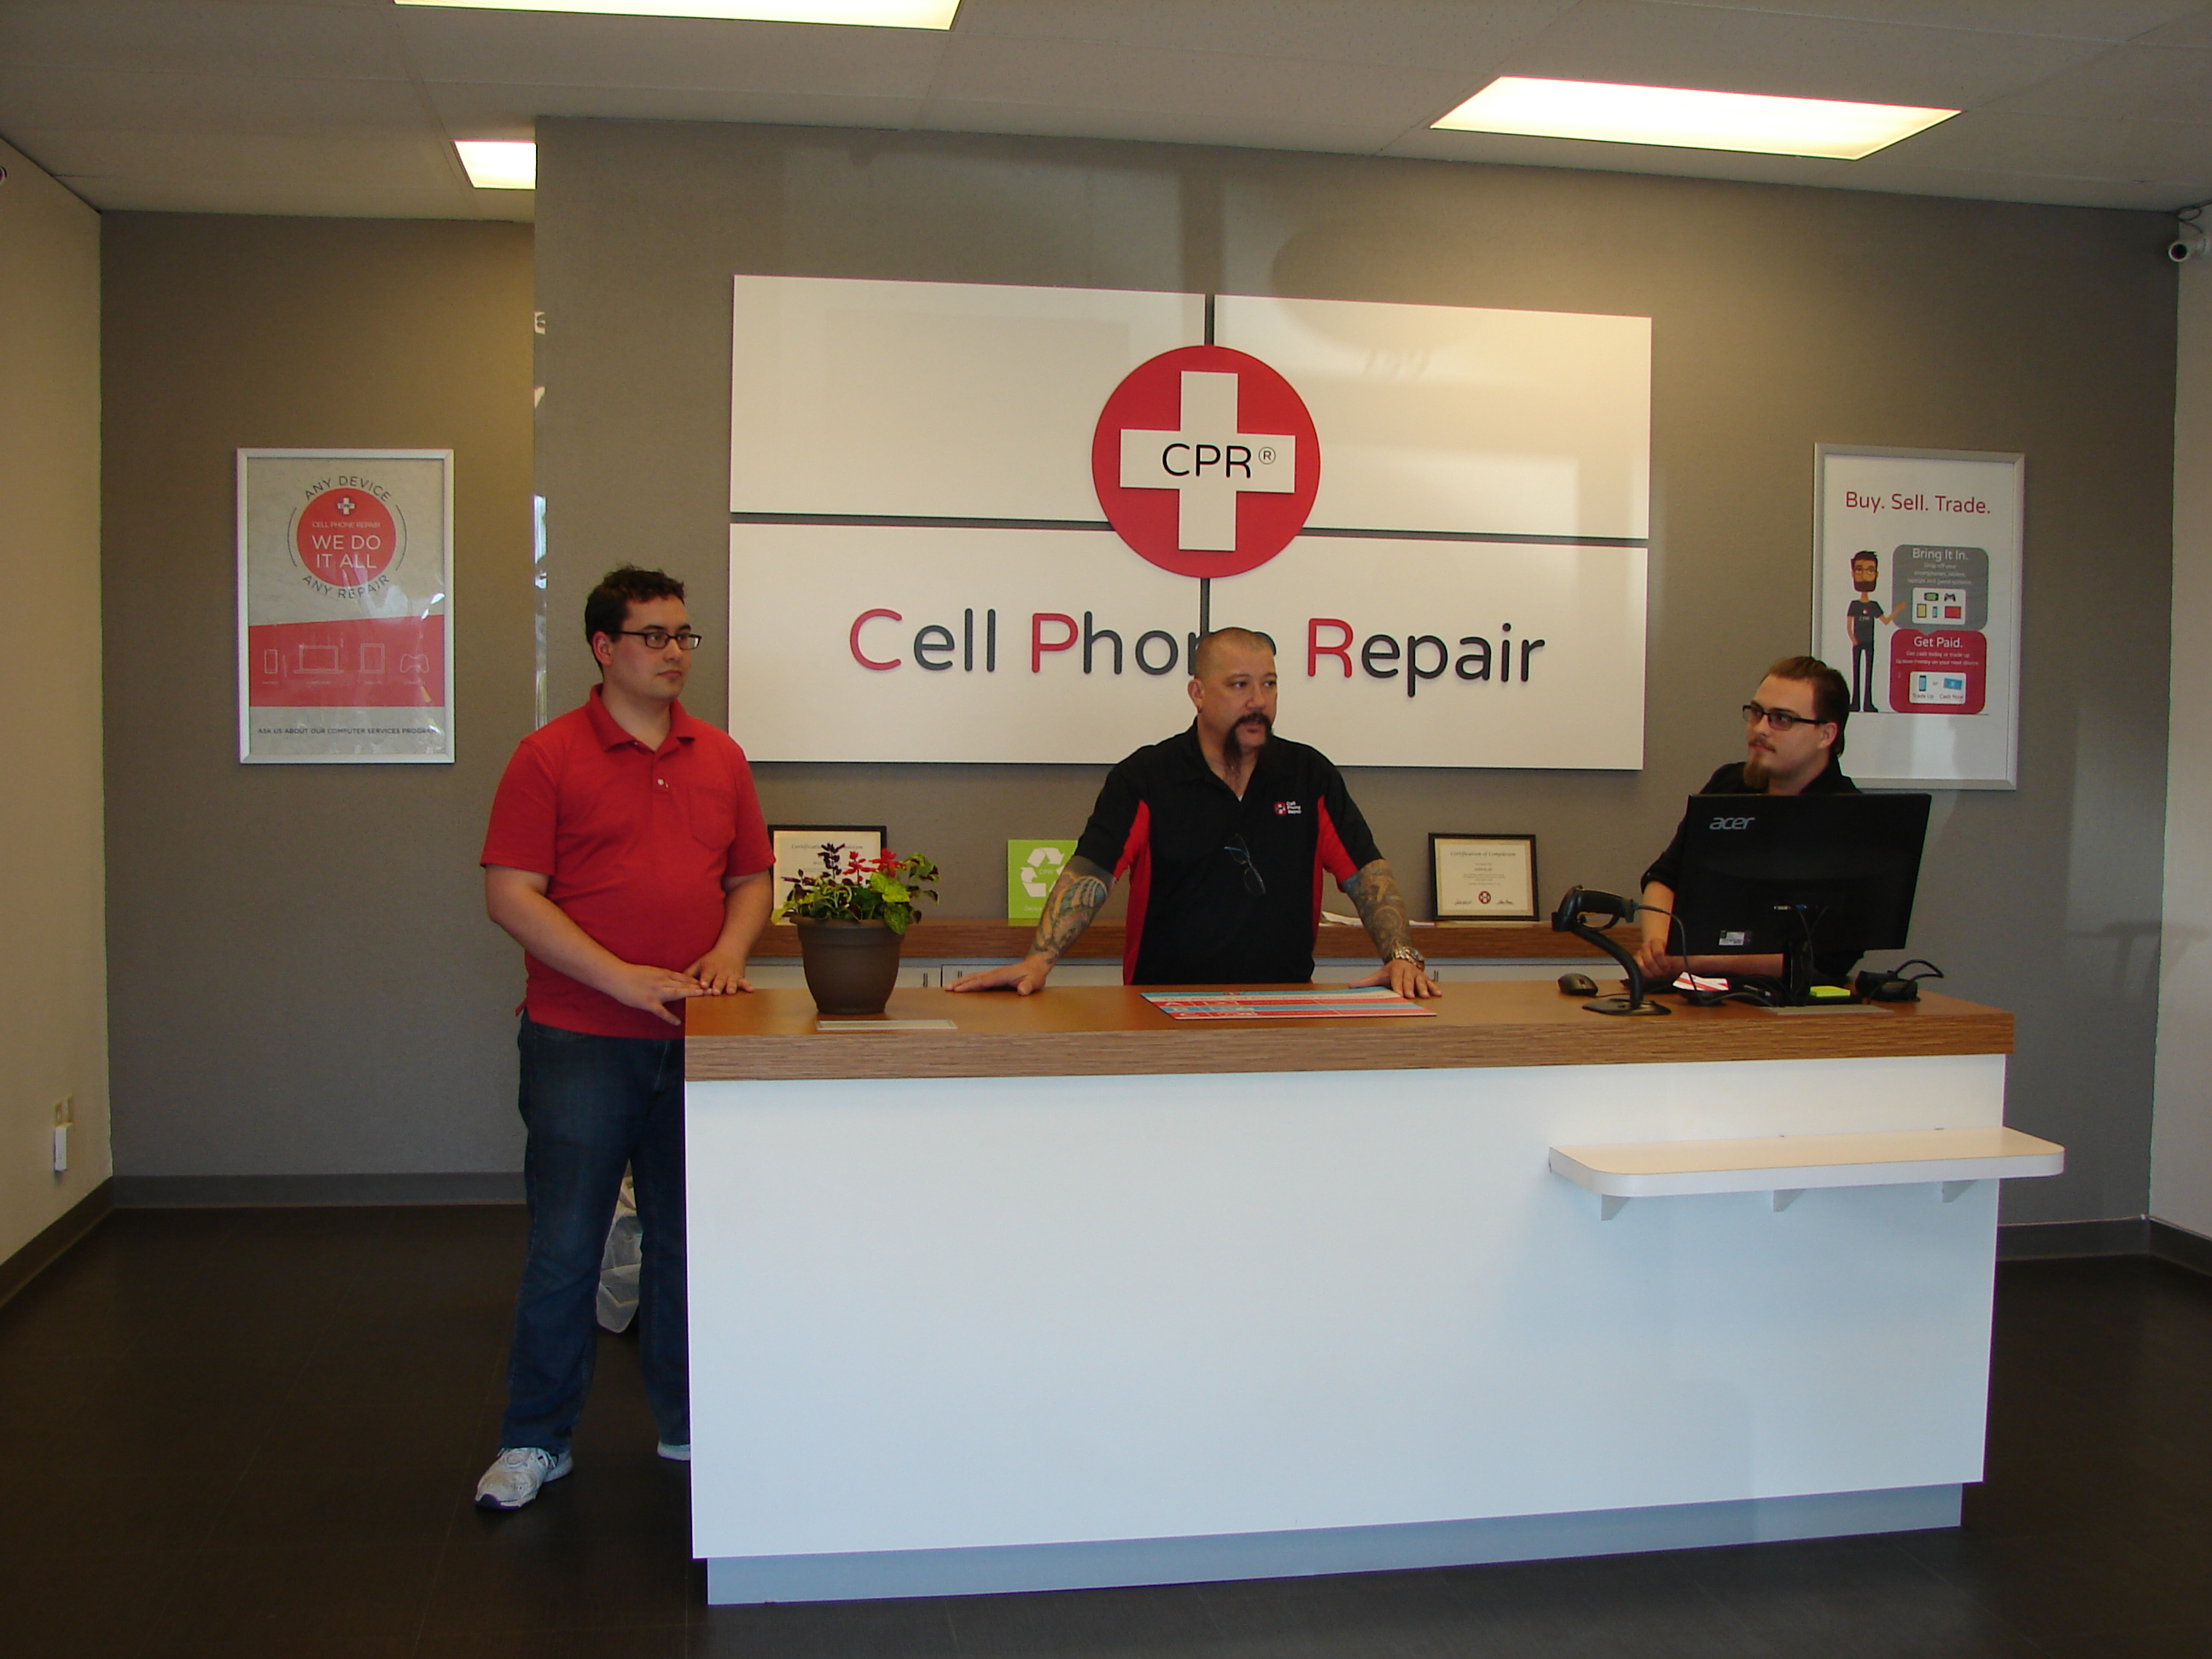 CPR Cell Phone Repair Silverdale image 3